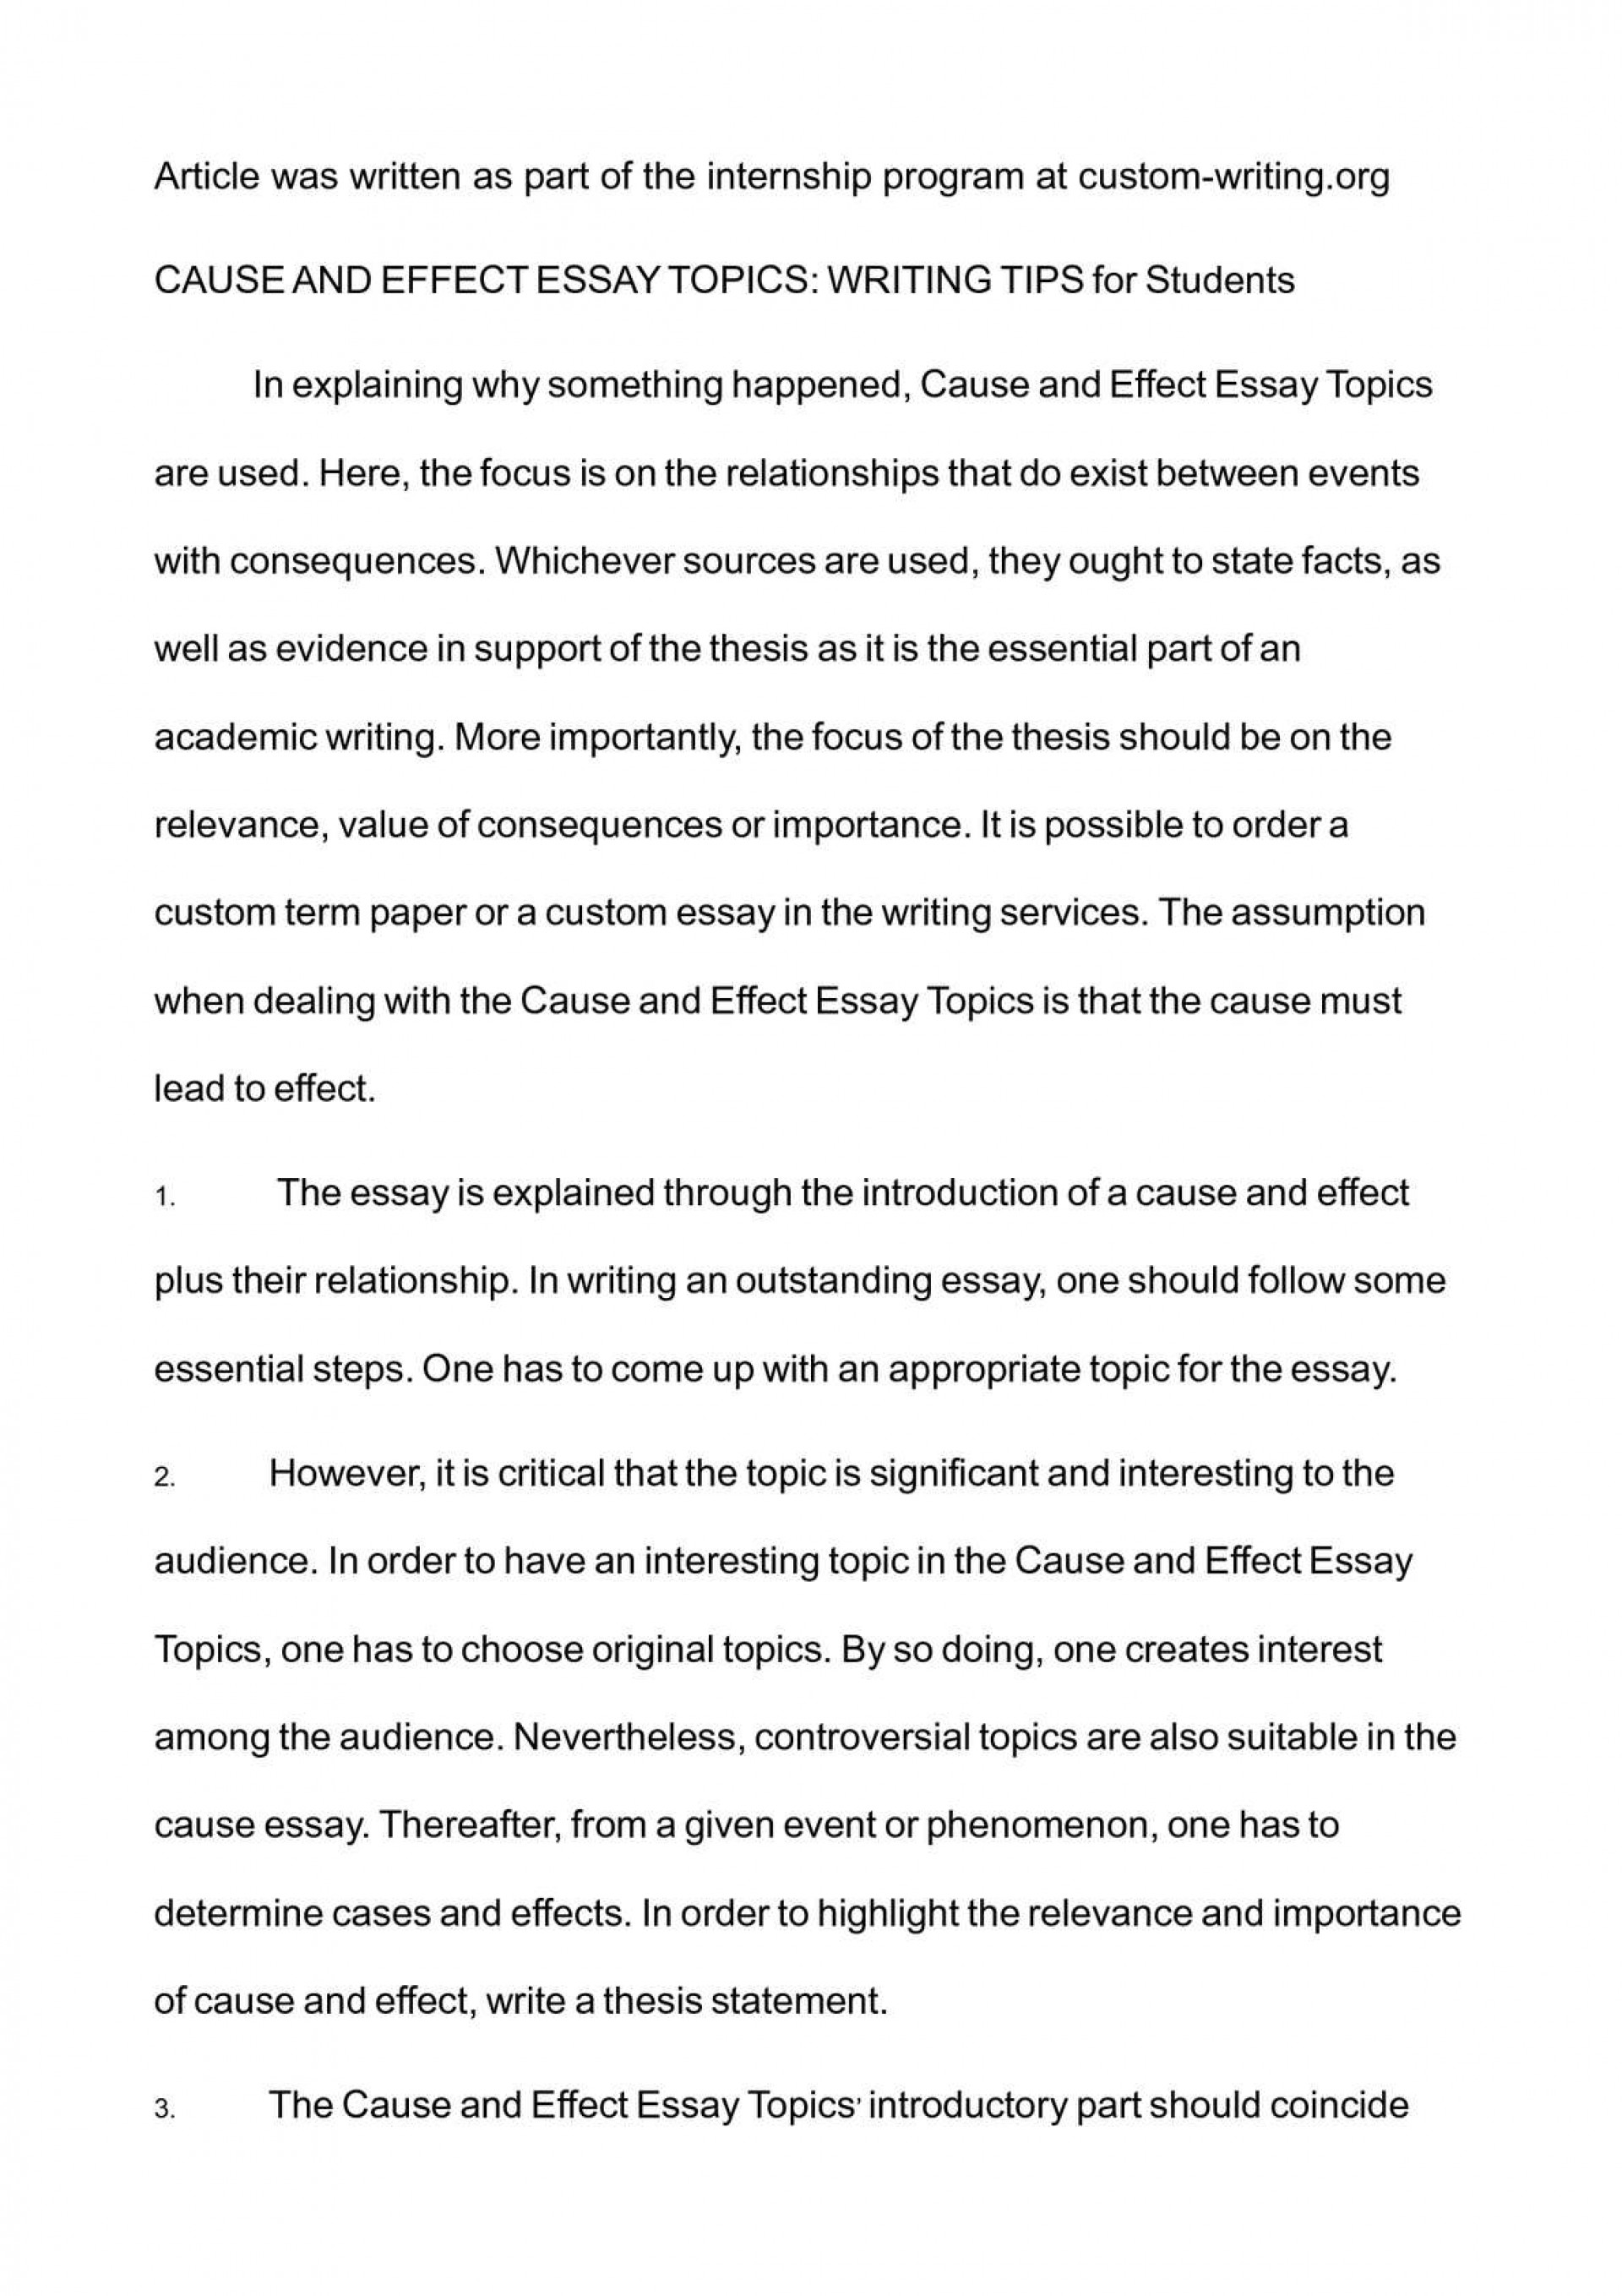 002 Essay Example P1 Cause And Effect Exceptional Topics For College Students High School Basketball 1920